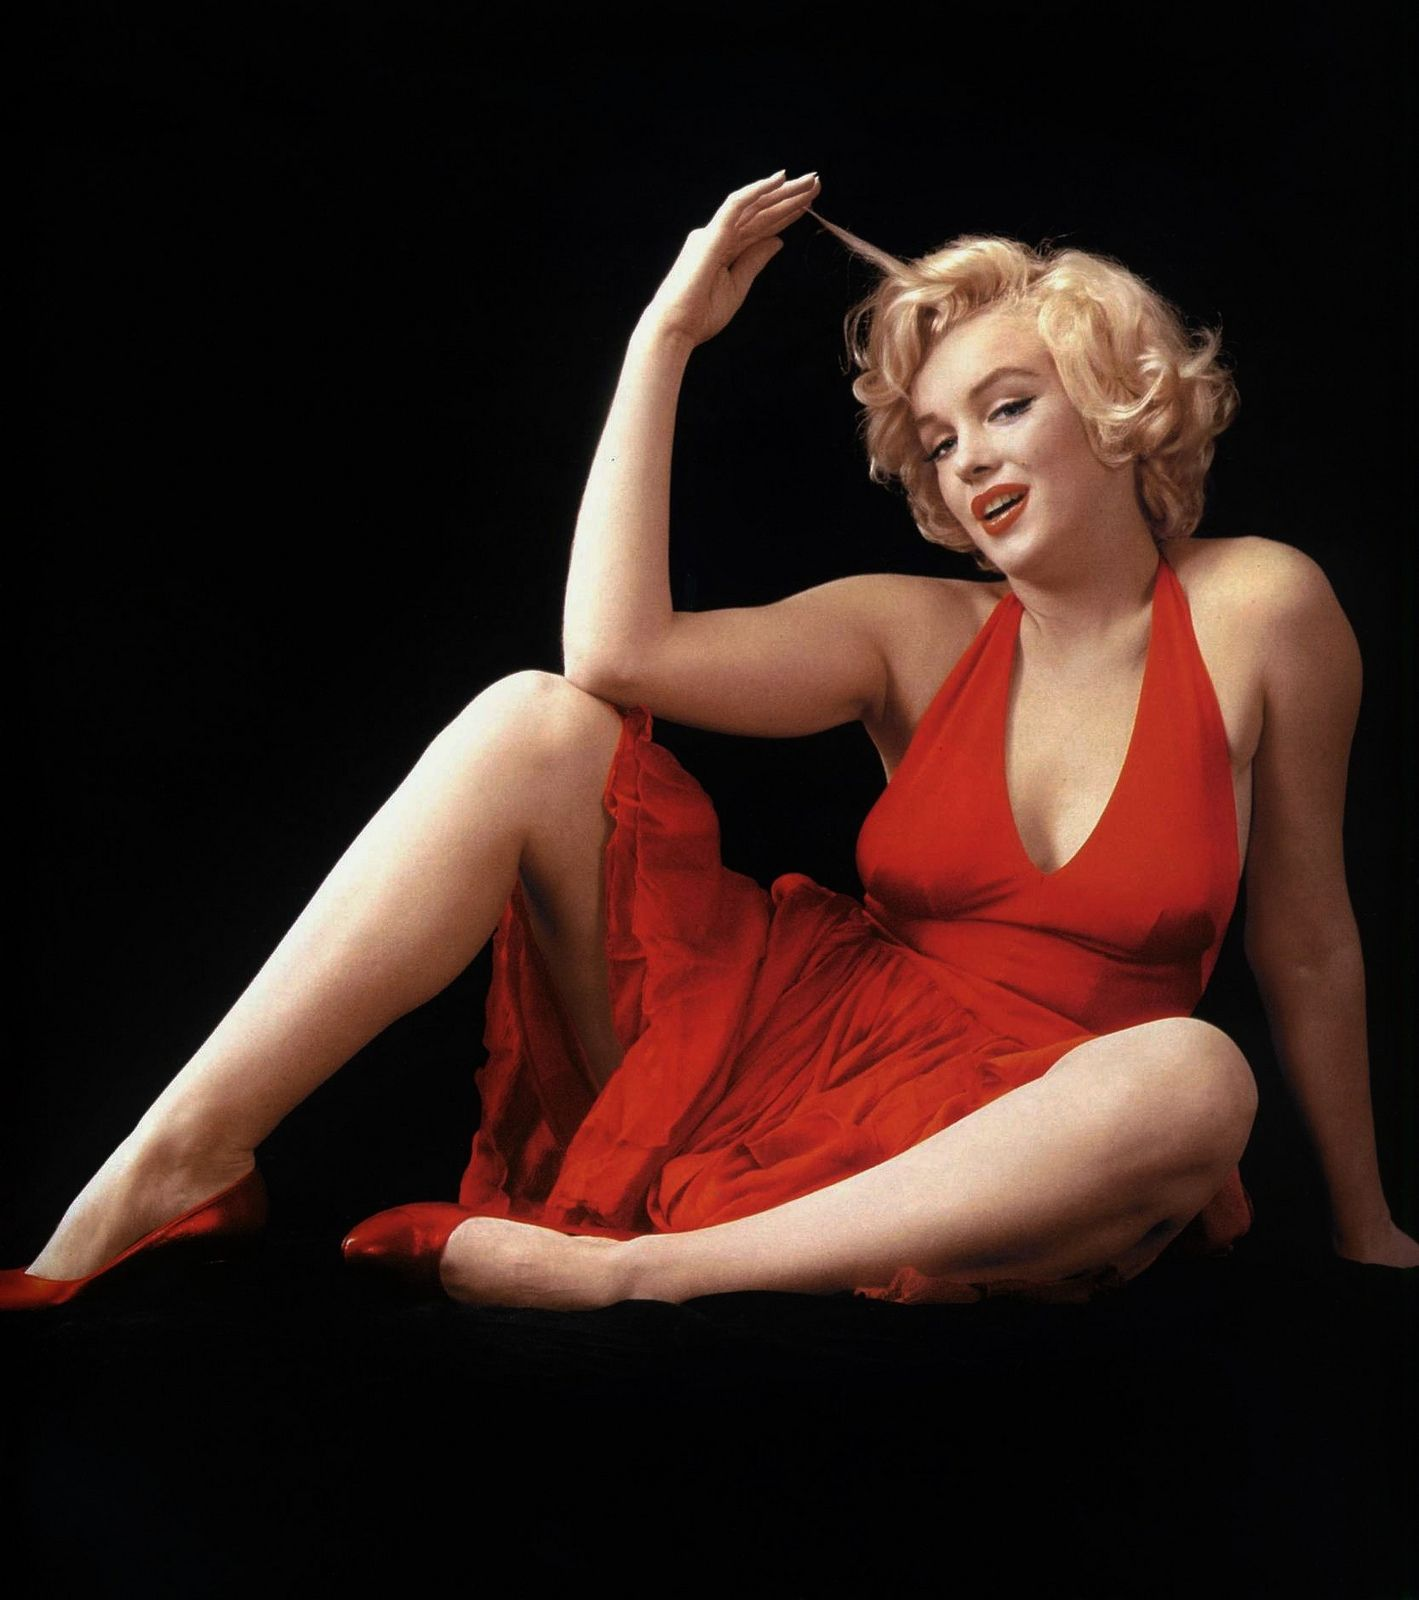 Marilyn Monroe pin up red dress | Celebrity/ Marilyn ...